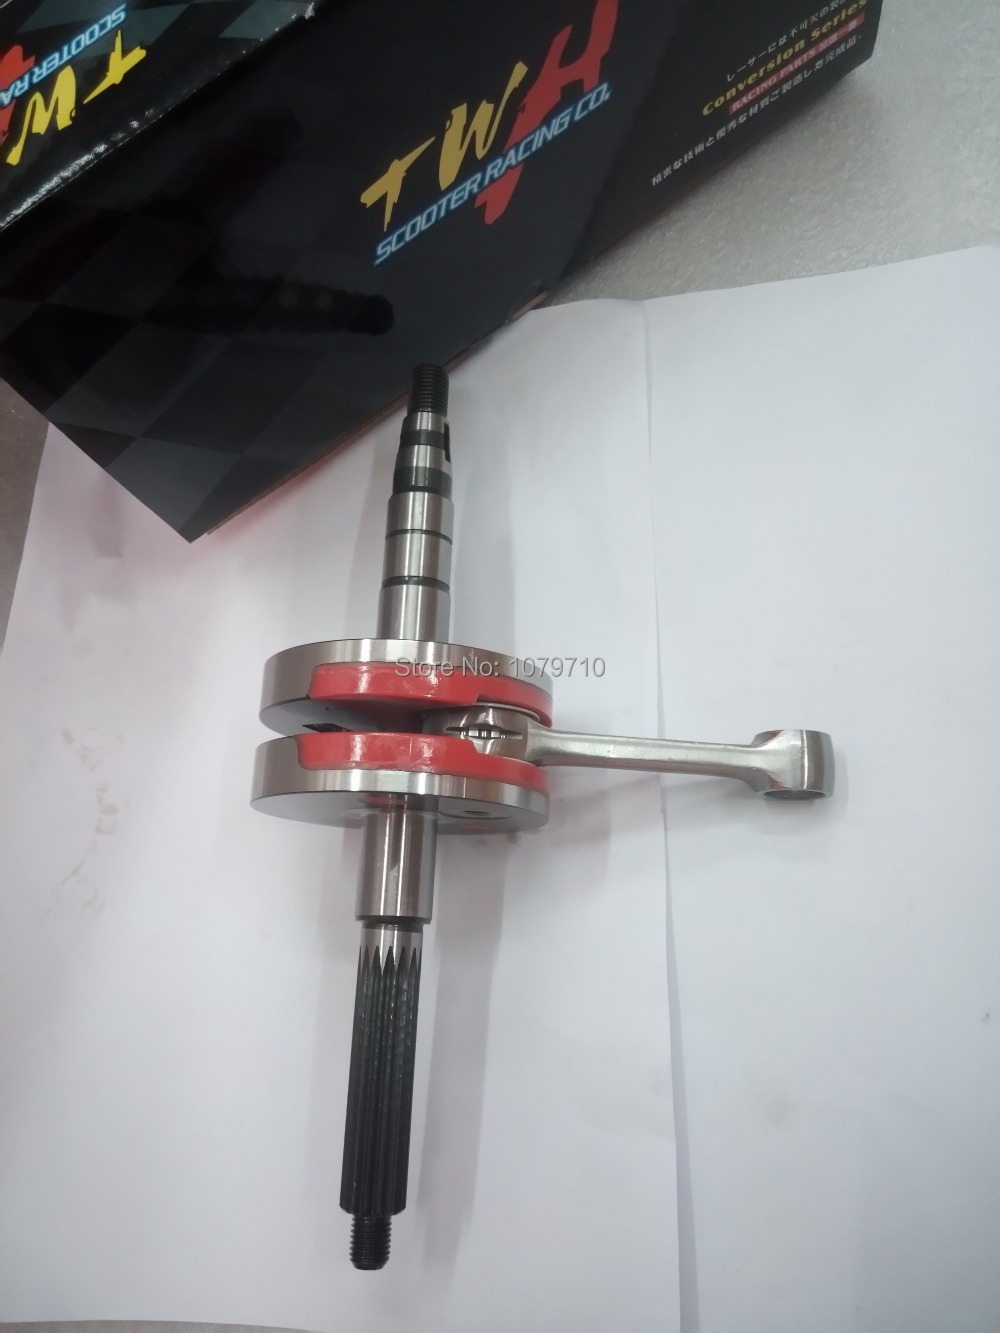 US $85 0 |Crankshaft for YAMAHA JOG 90cc 45MM +(3 0)  High Performance  scooter engine accessories crank for Racing 100% Made In Taiwan-in  Crankshafts